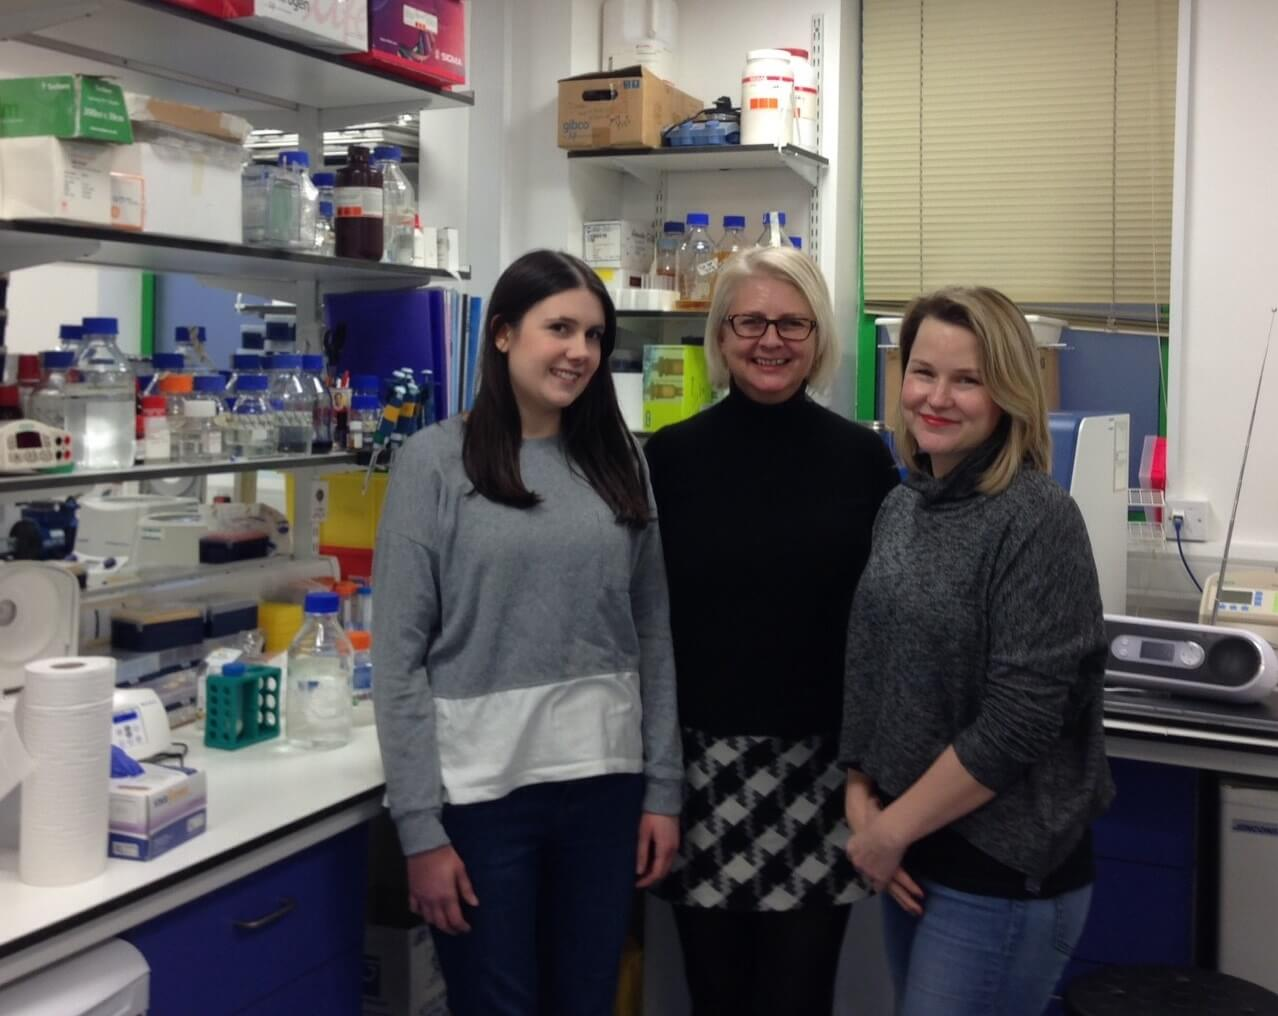 The research team pictured standing together in the lab.